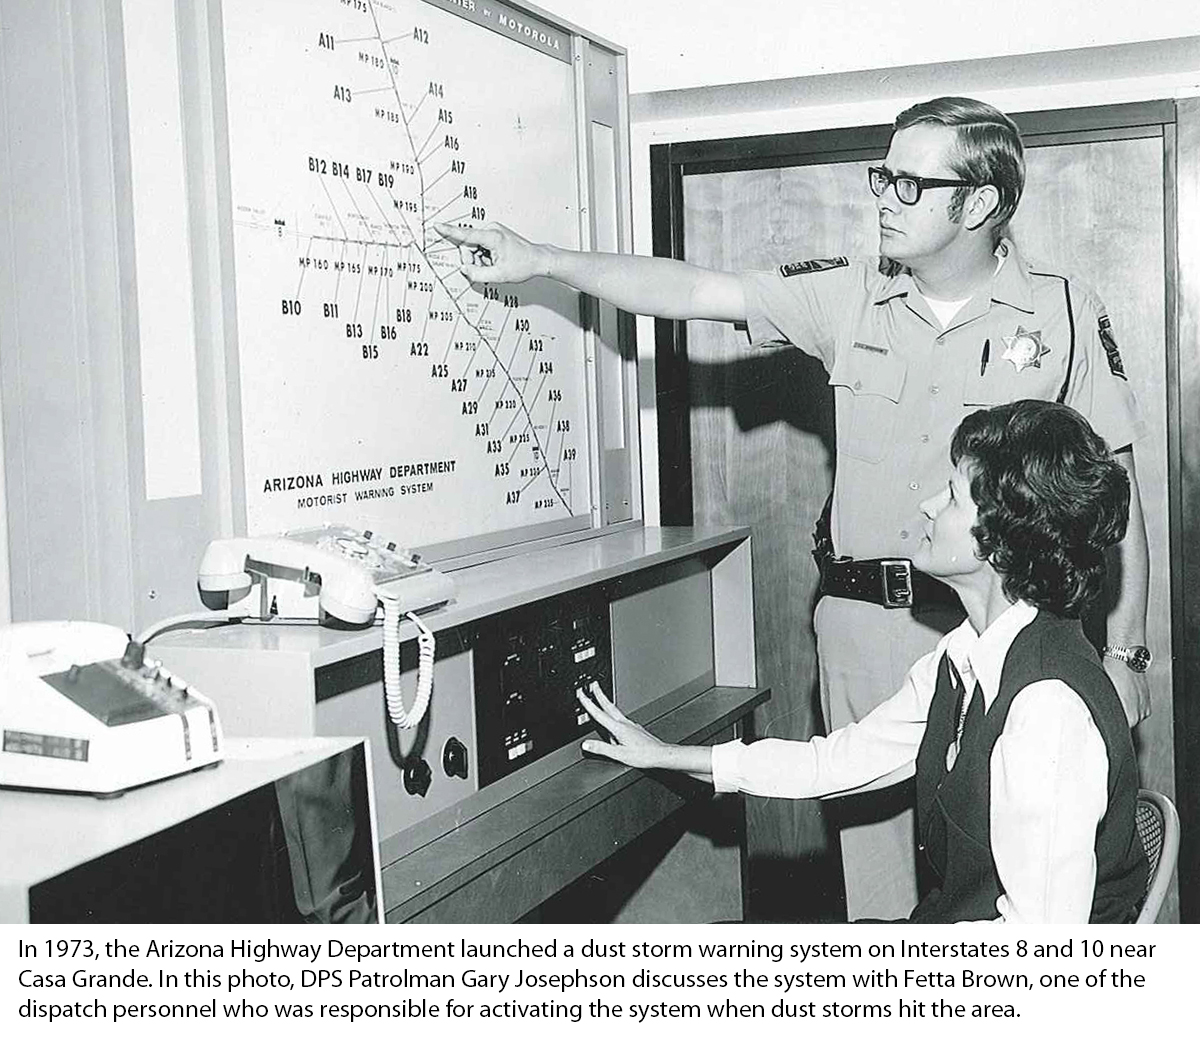 photo from 1973 showing early dust storm alert system